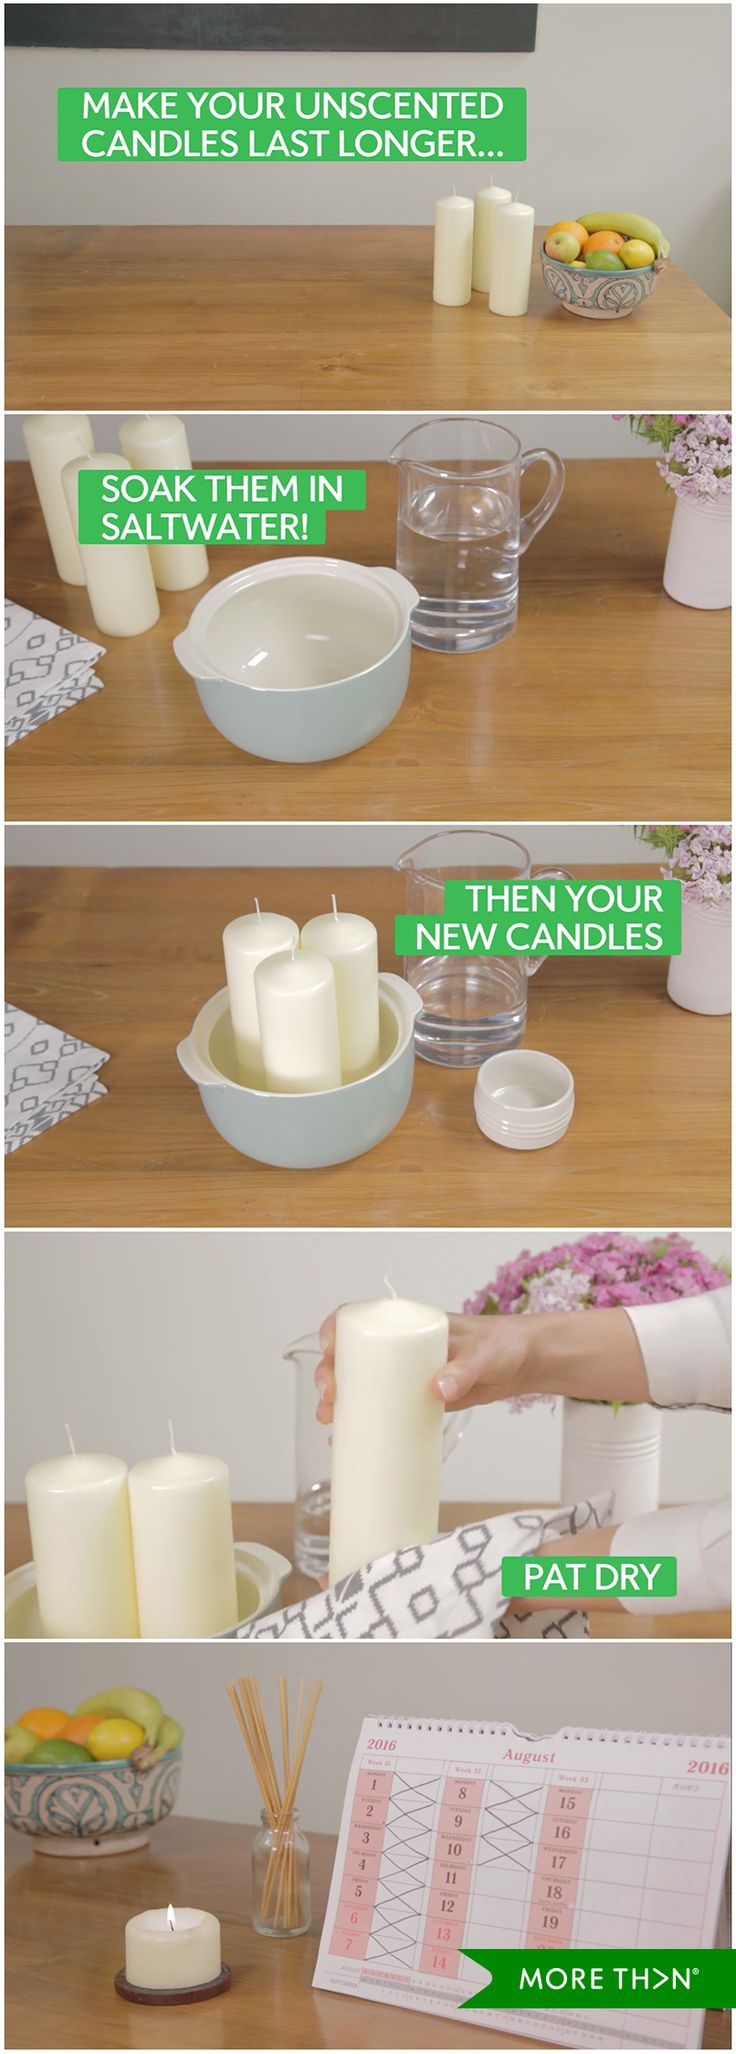 Did you know that there is an easy way to prolong the life of your candles? Just grab a jug of water, some salt and watch this video to learn how! WARNING: this life hack isn't suitable for scented candles.